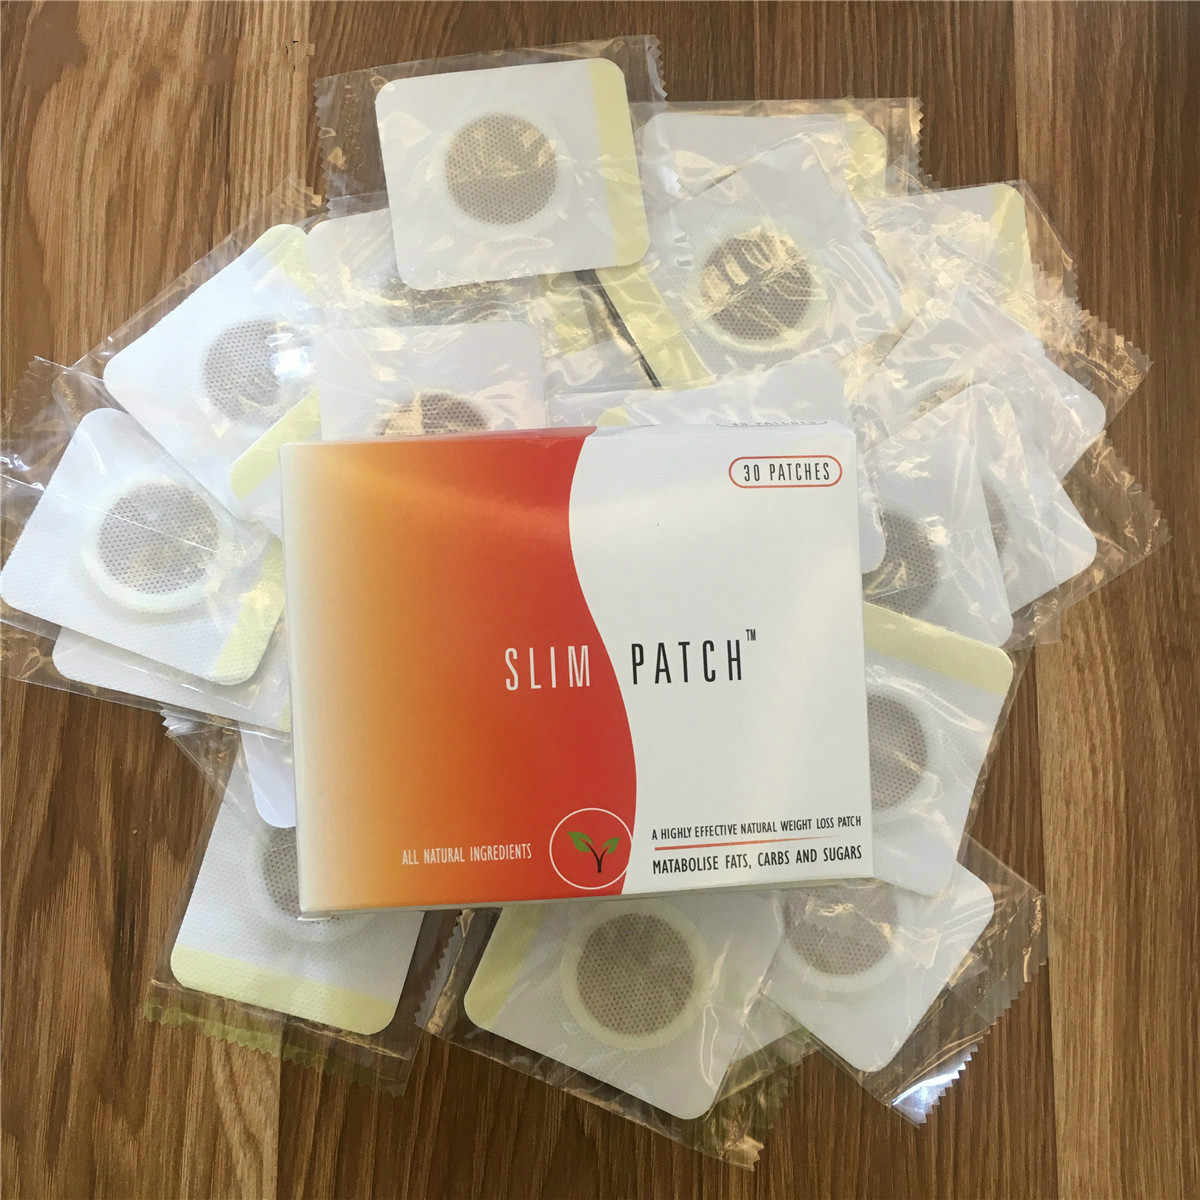 30pcs Slim Patch Stomach Fat Burning Navel Stick Slimming Lose Weight Burn Fat Anti Cellulite Abdomen Parches Face Lift Tools